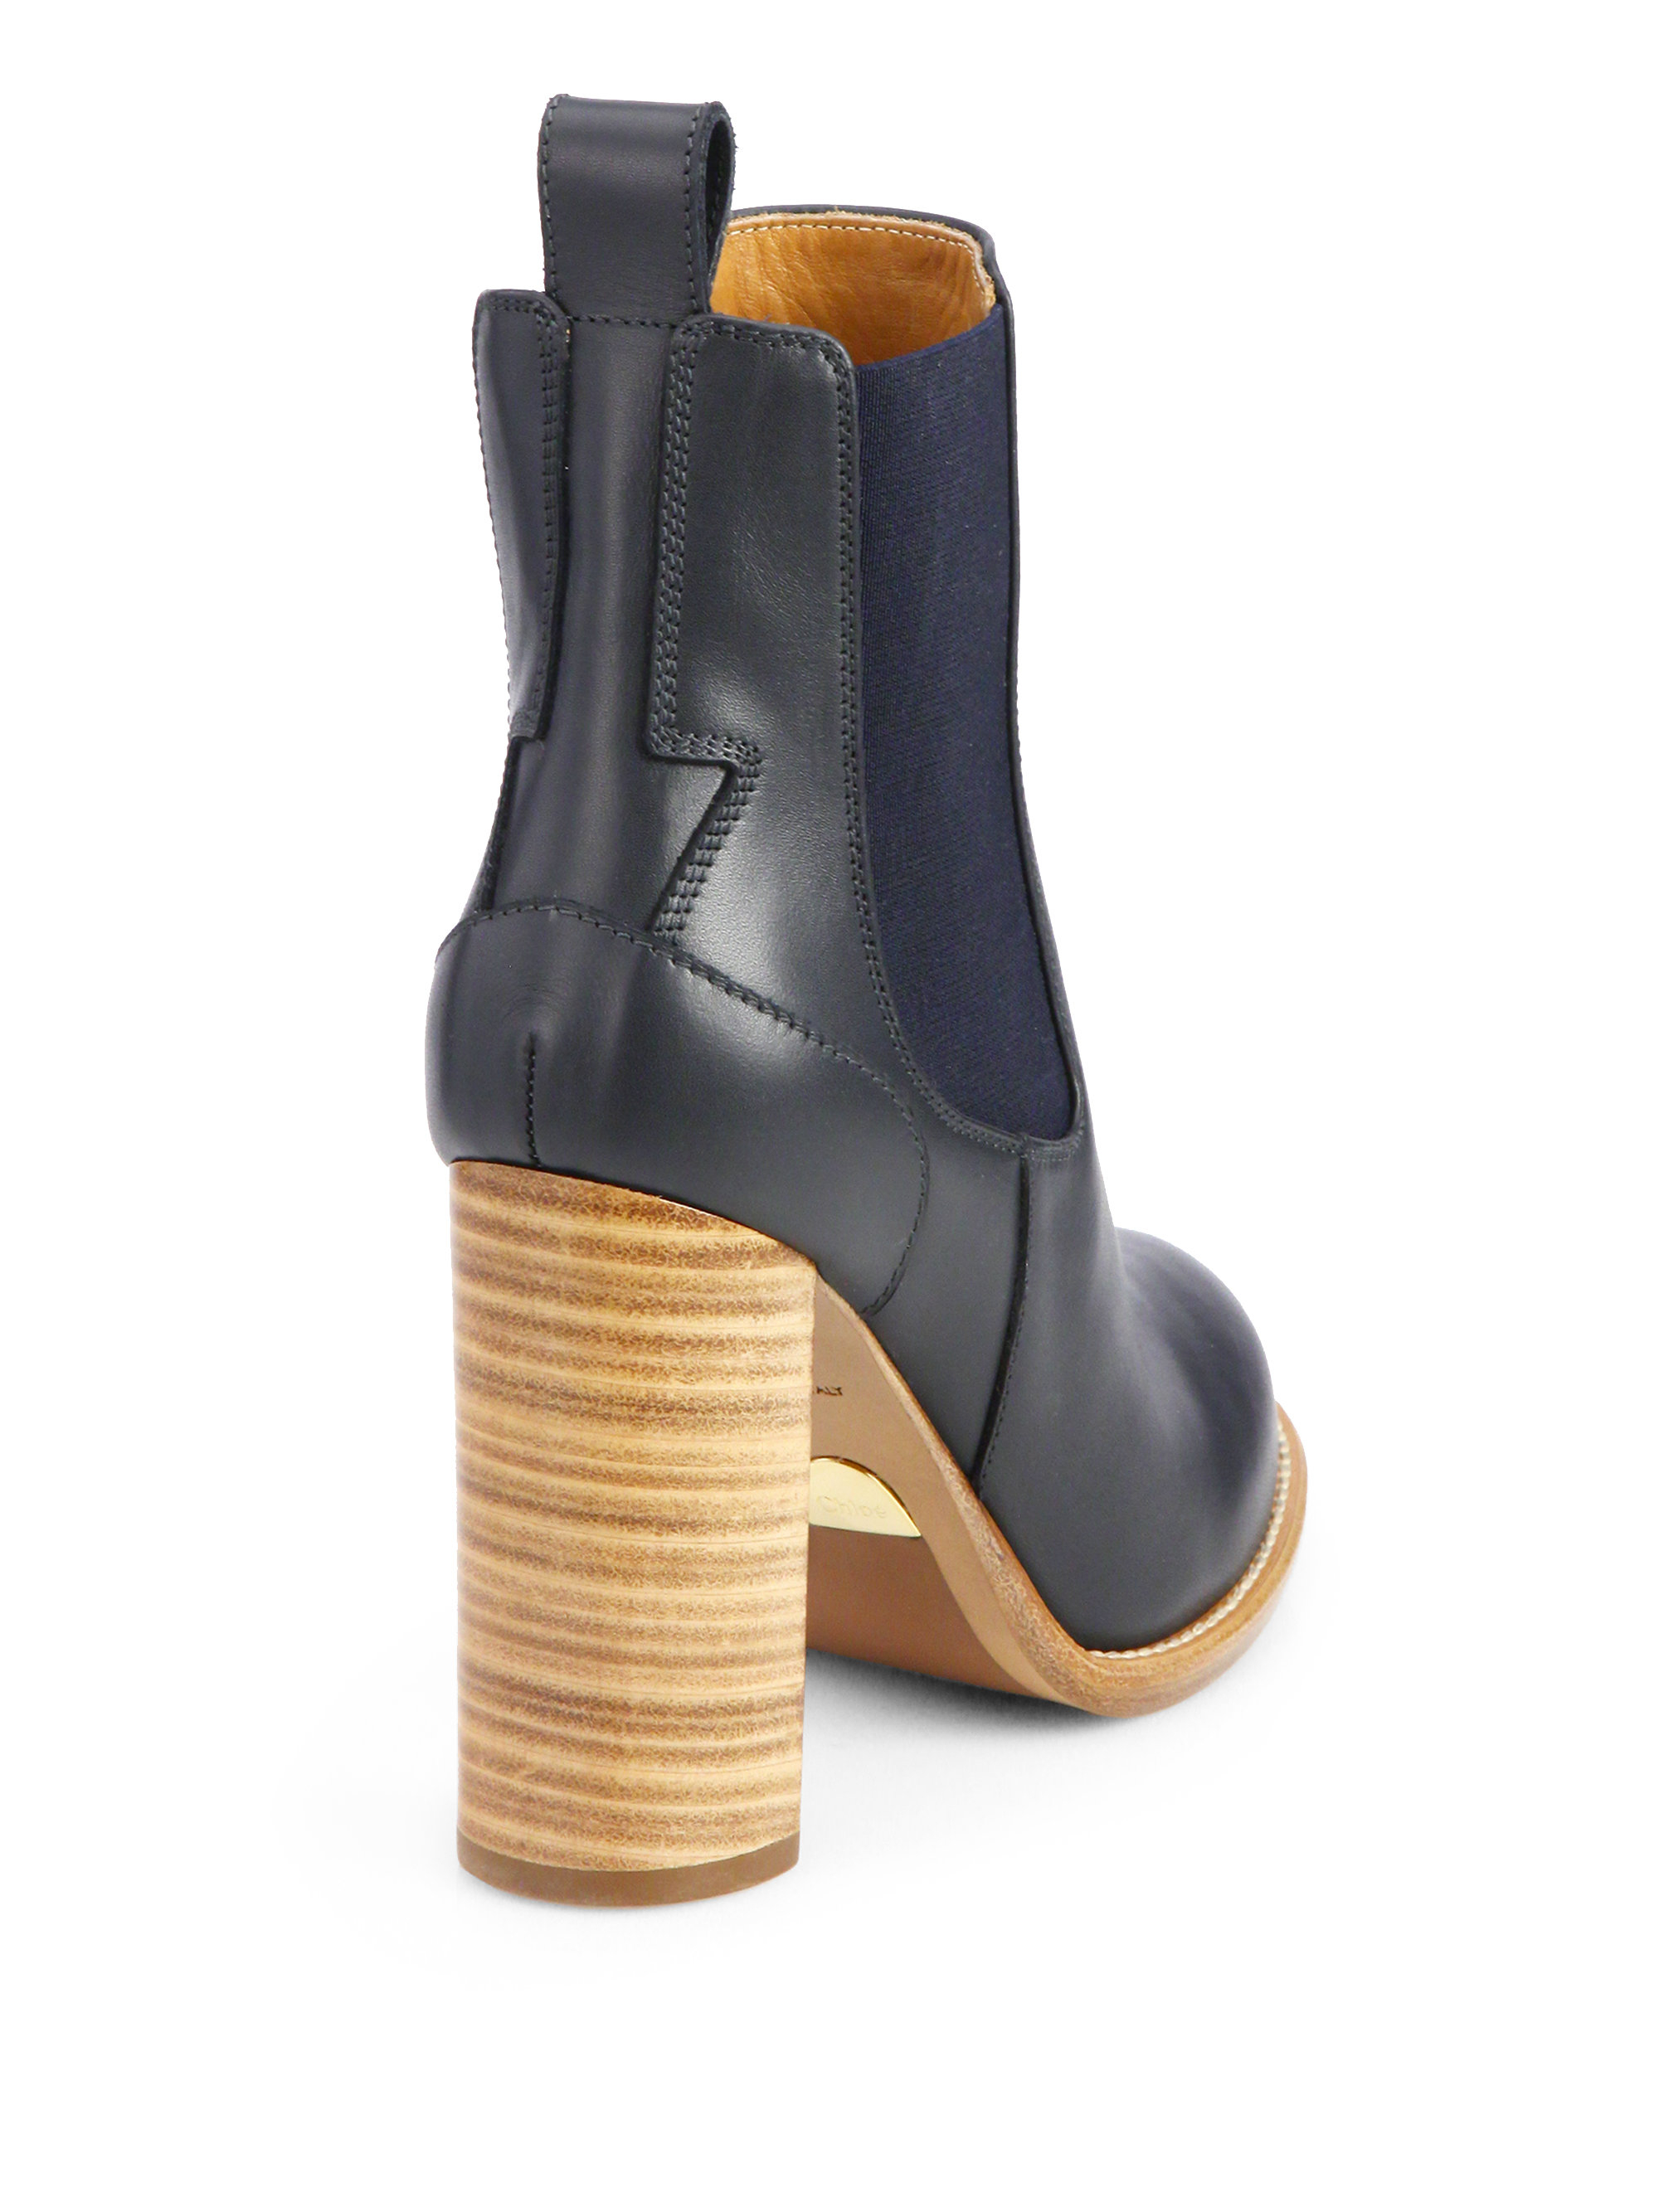 Chloé Leather Ankle Boots in Blue | Lyst